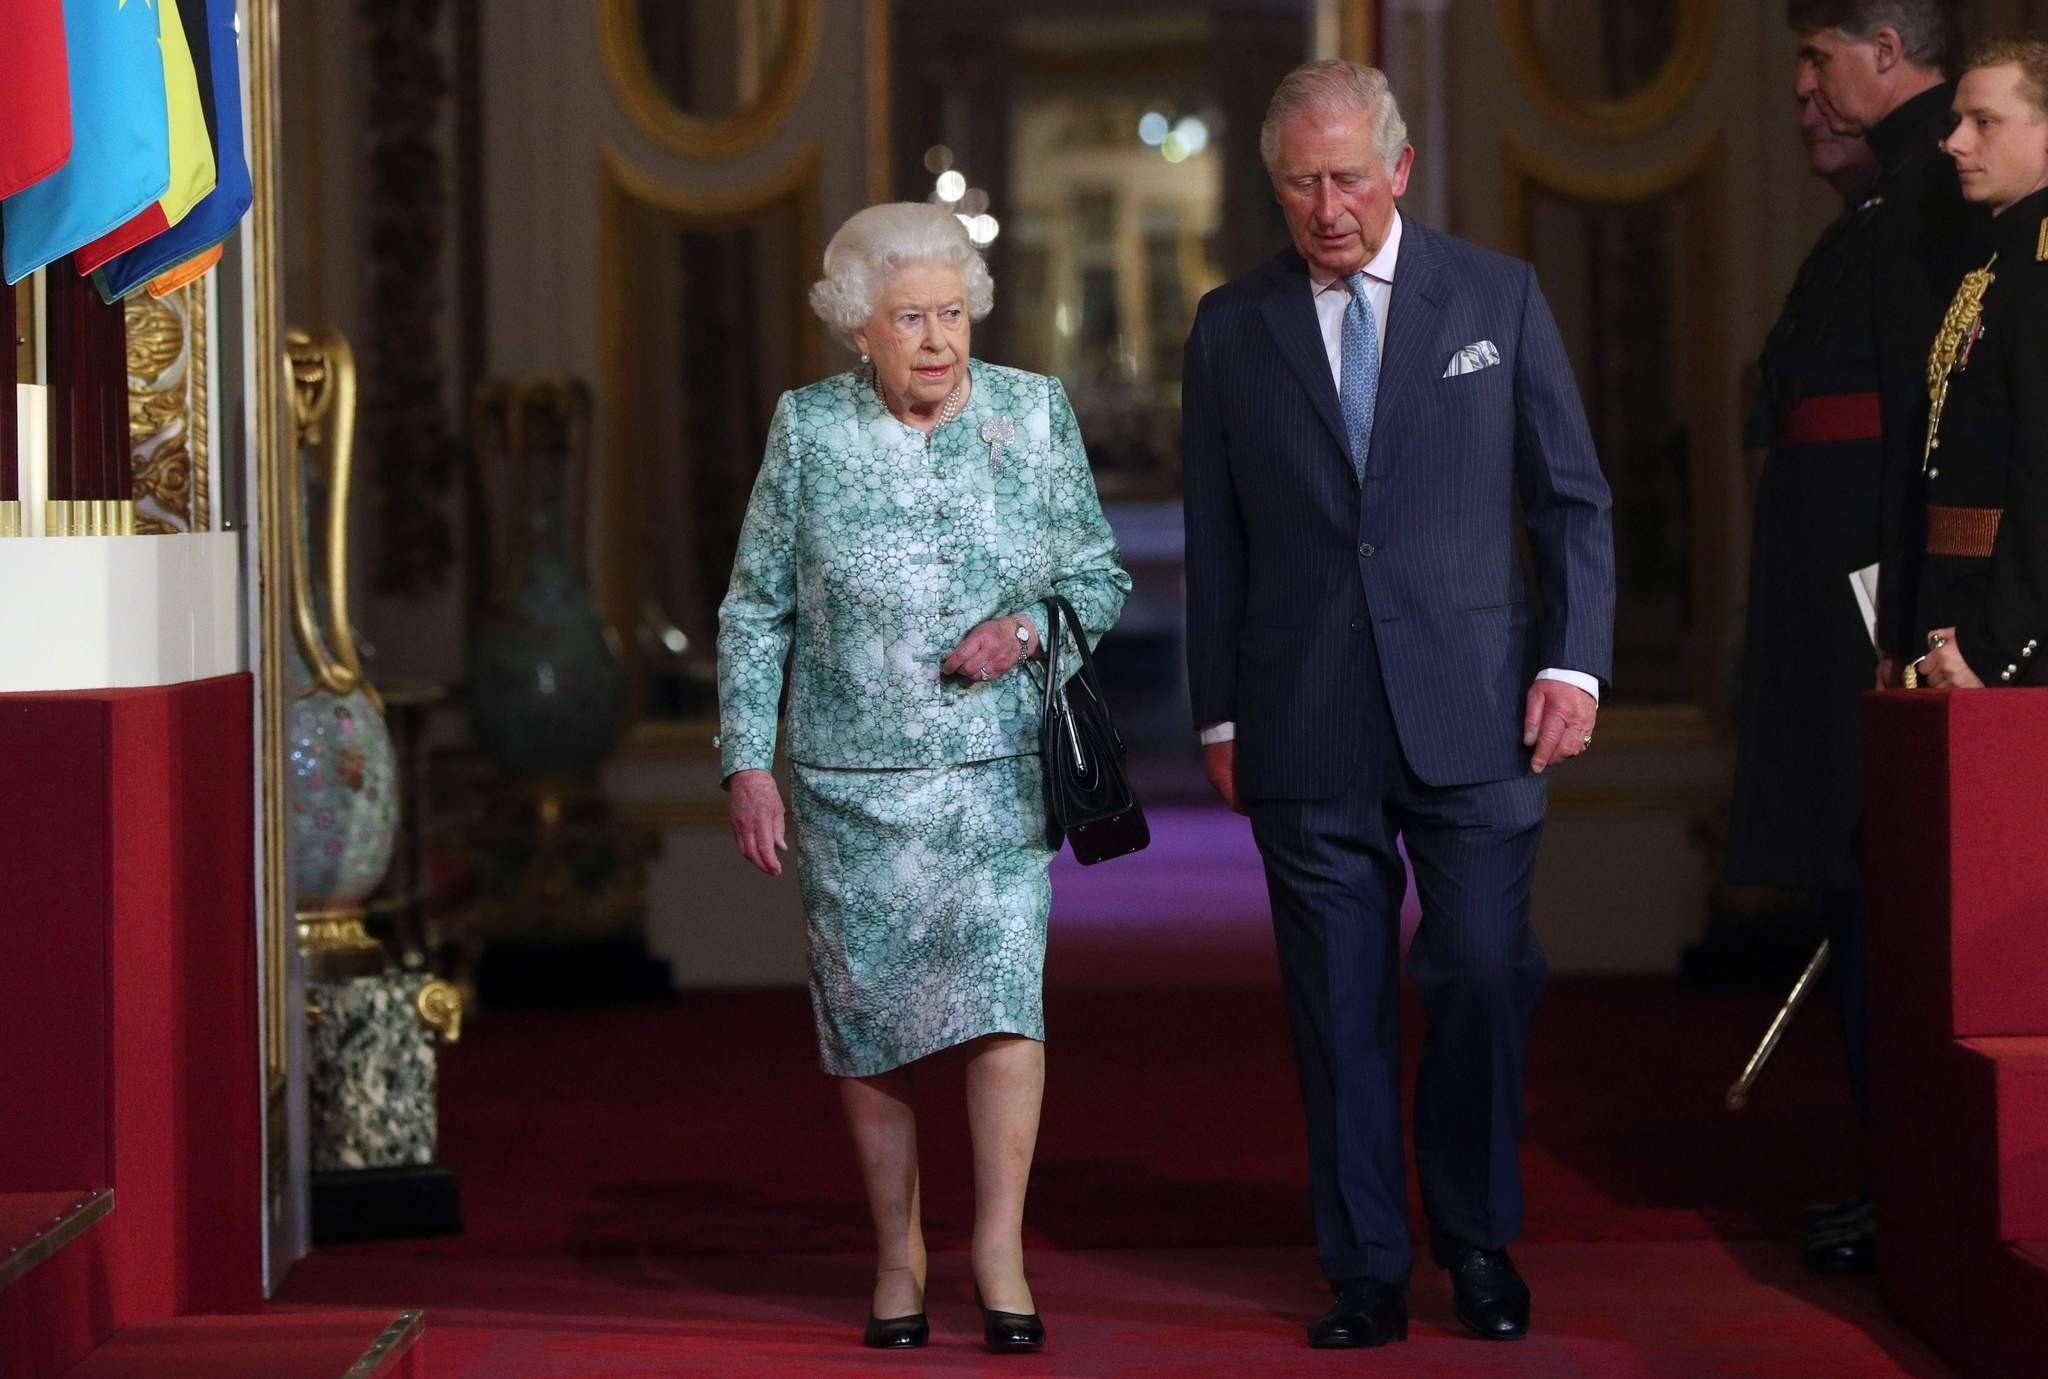 Britain's Queen Elizabeth II and Britain's Prince Charles arrive for the formal opening of the Commonwealth Heads of Government Meeting (CHOGM), in the ballroom at Buckingham Palace in London on April 19, 2018. (AFP Photo)